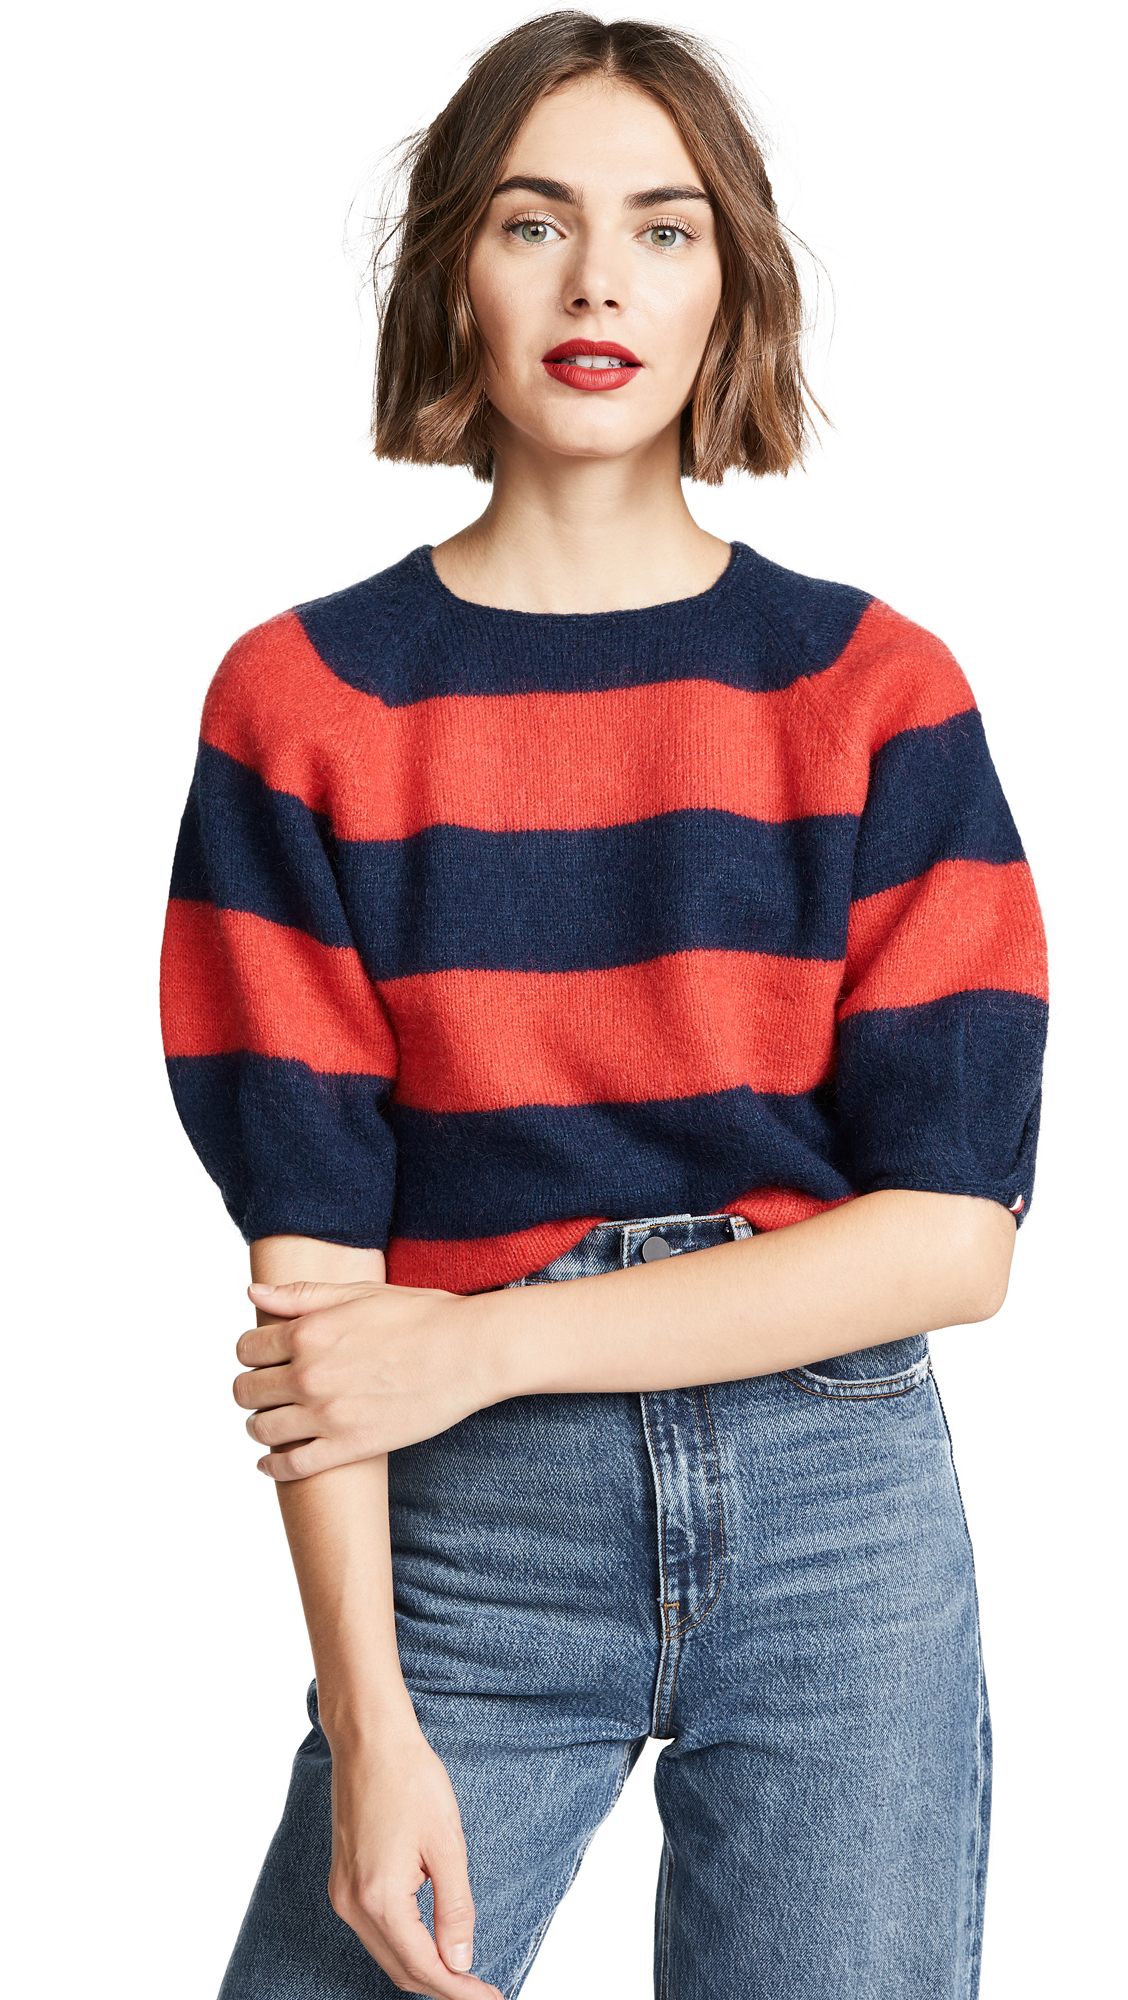 DEMYLEE X Clare V Le Pouf Sweater in Navy & Red Striped Mohair